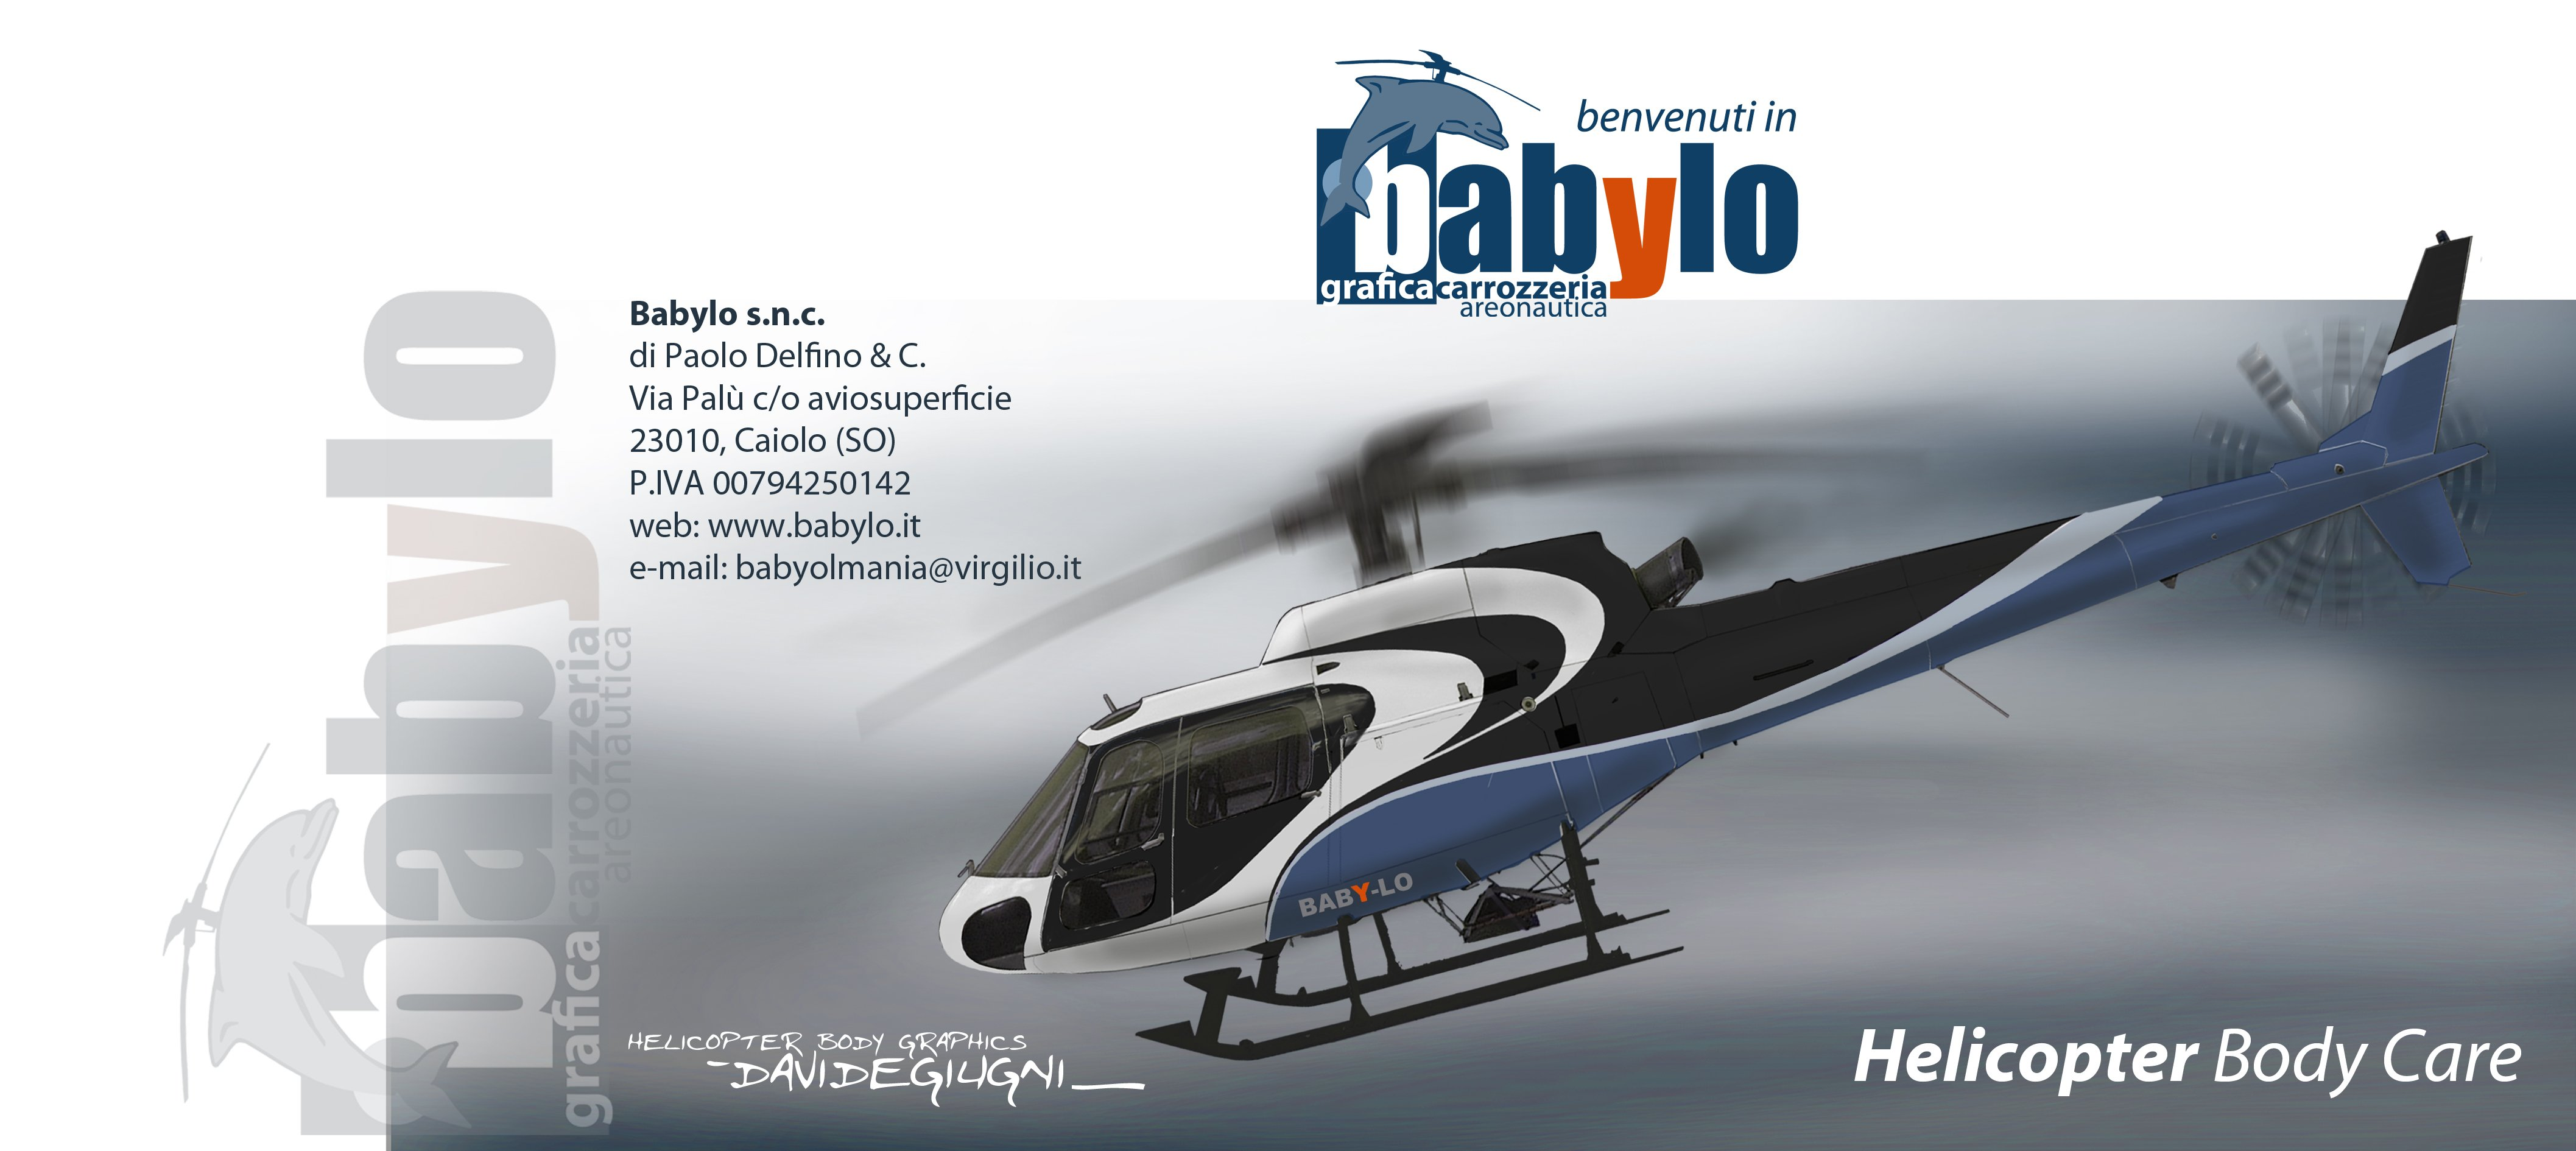 Helicopter Body care